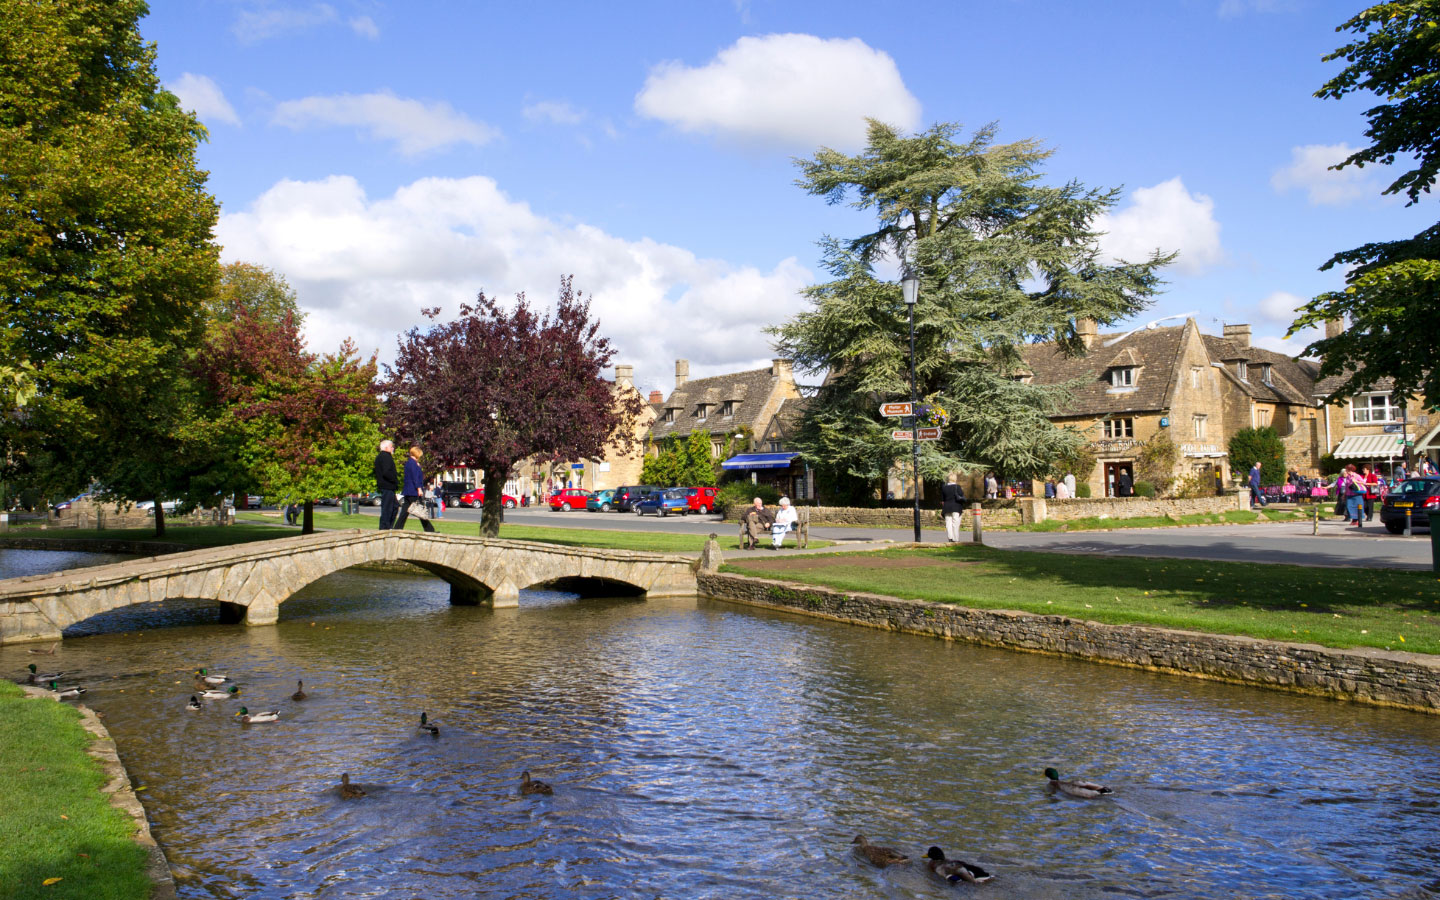 The River Windrush in Bourton-on-the-Water [photo credit Canva]